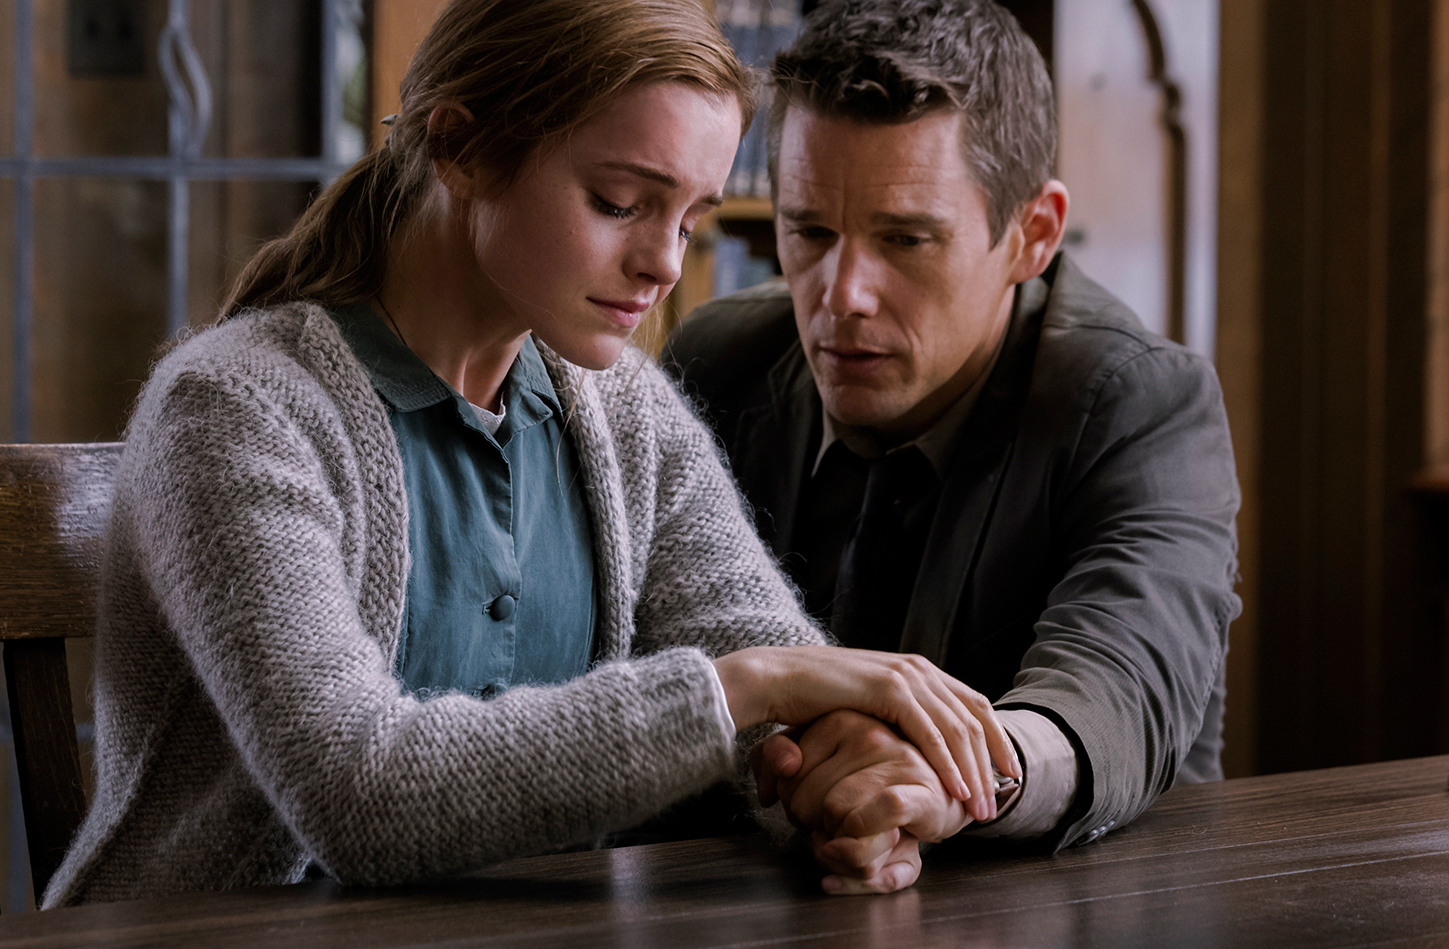 'Regression' Official Trailer Starring Emma Watson and Ethan Hawke